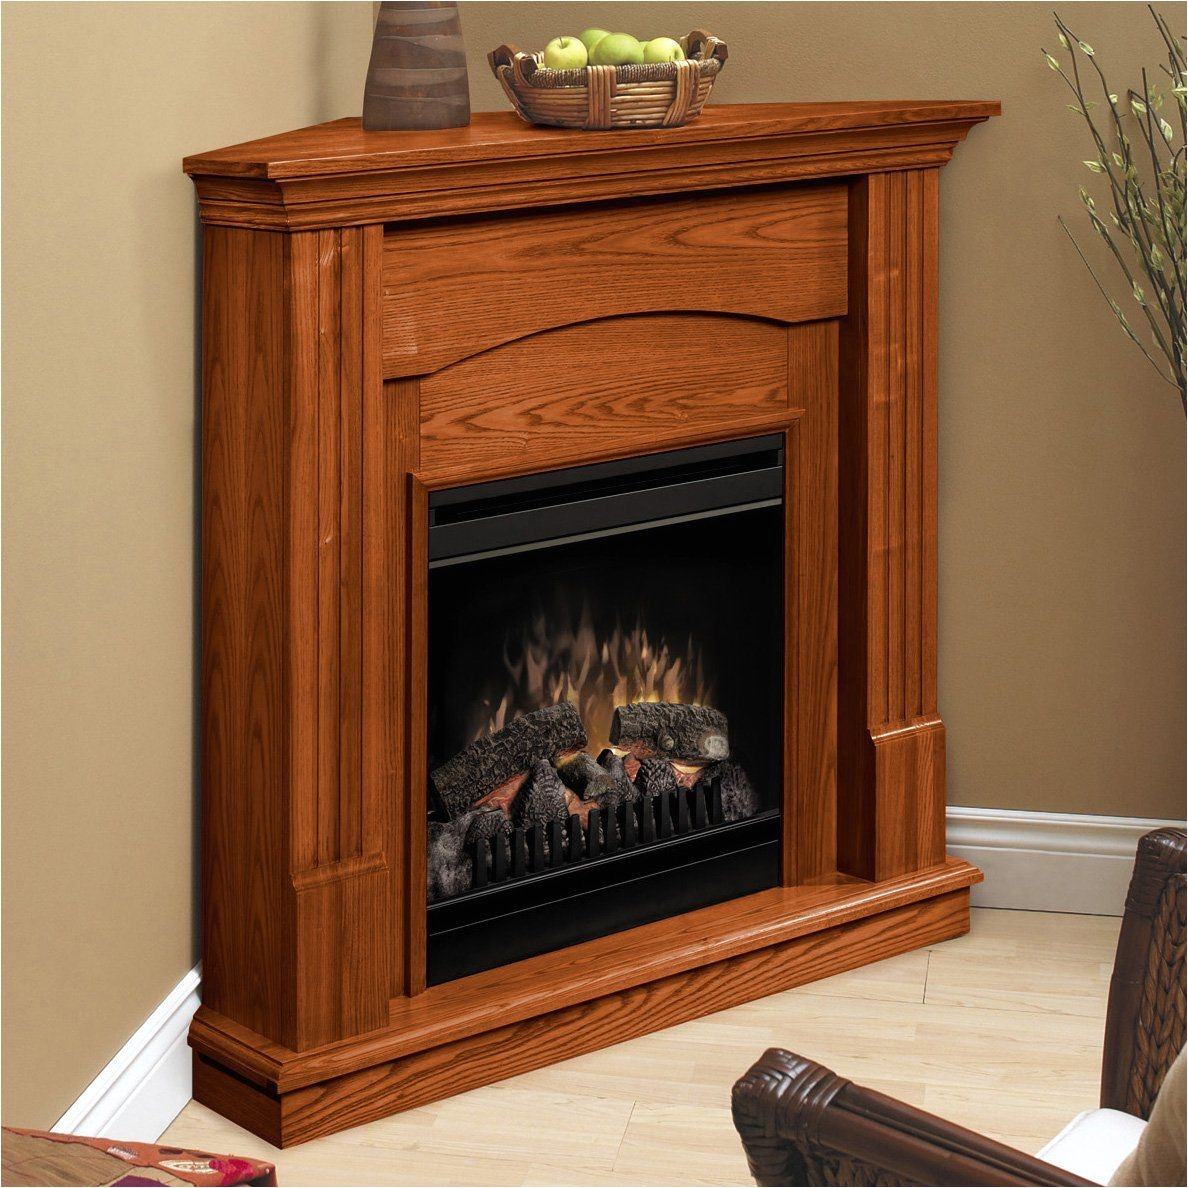 Big Lots Fireplace Heaters 19 Best Corner Fireplace Ideas for Your Home Pinterest Corner